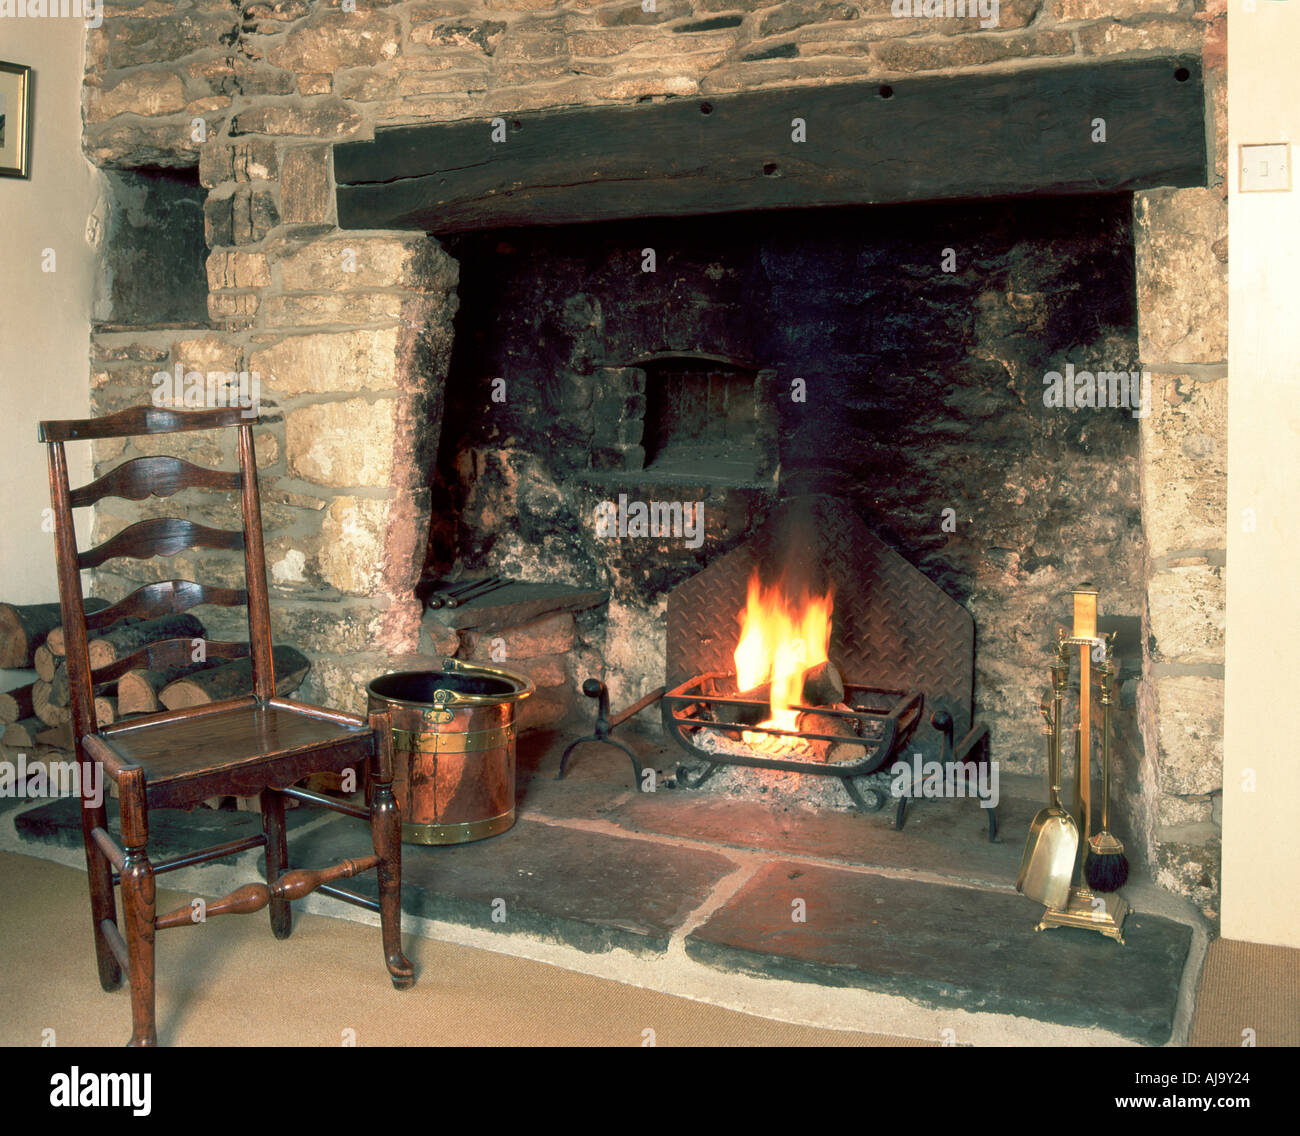 Fireside Chair By Old Stone Fireplace Stock Photo 4790051 Alamy